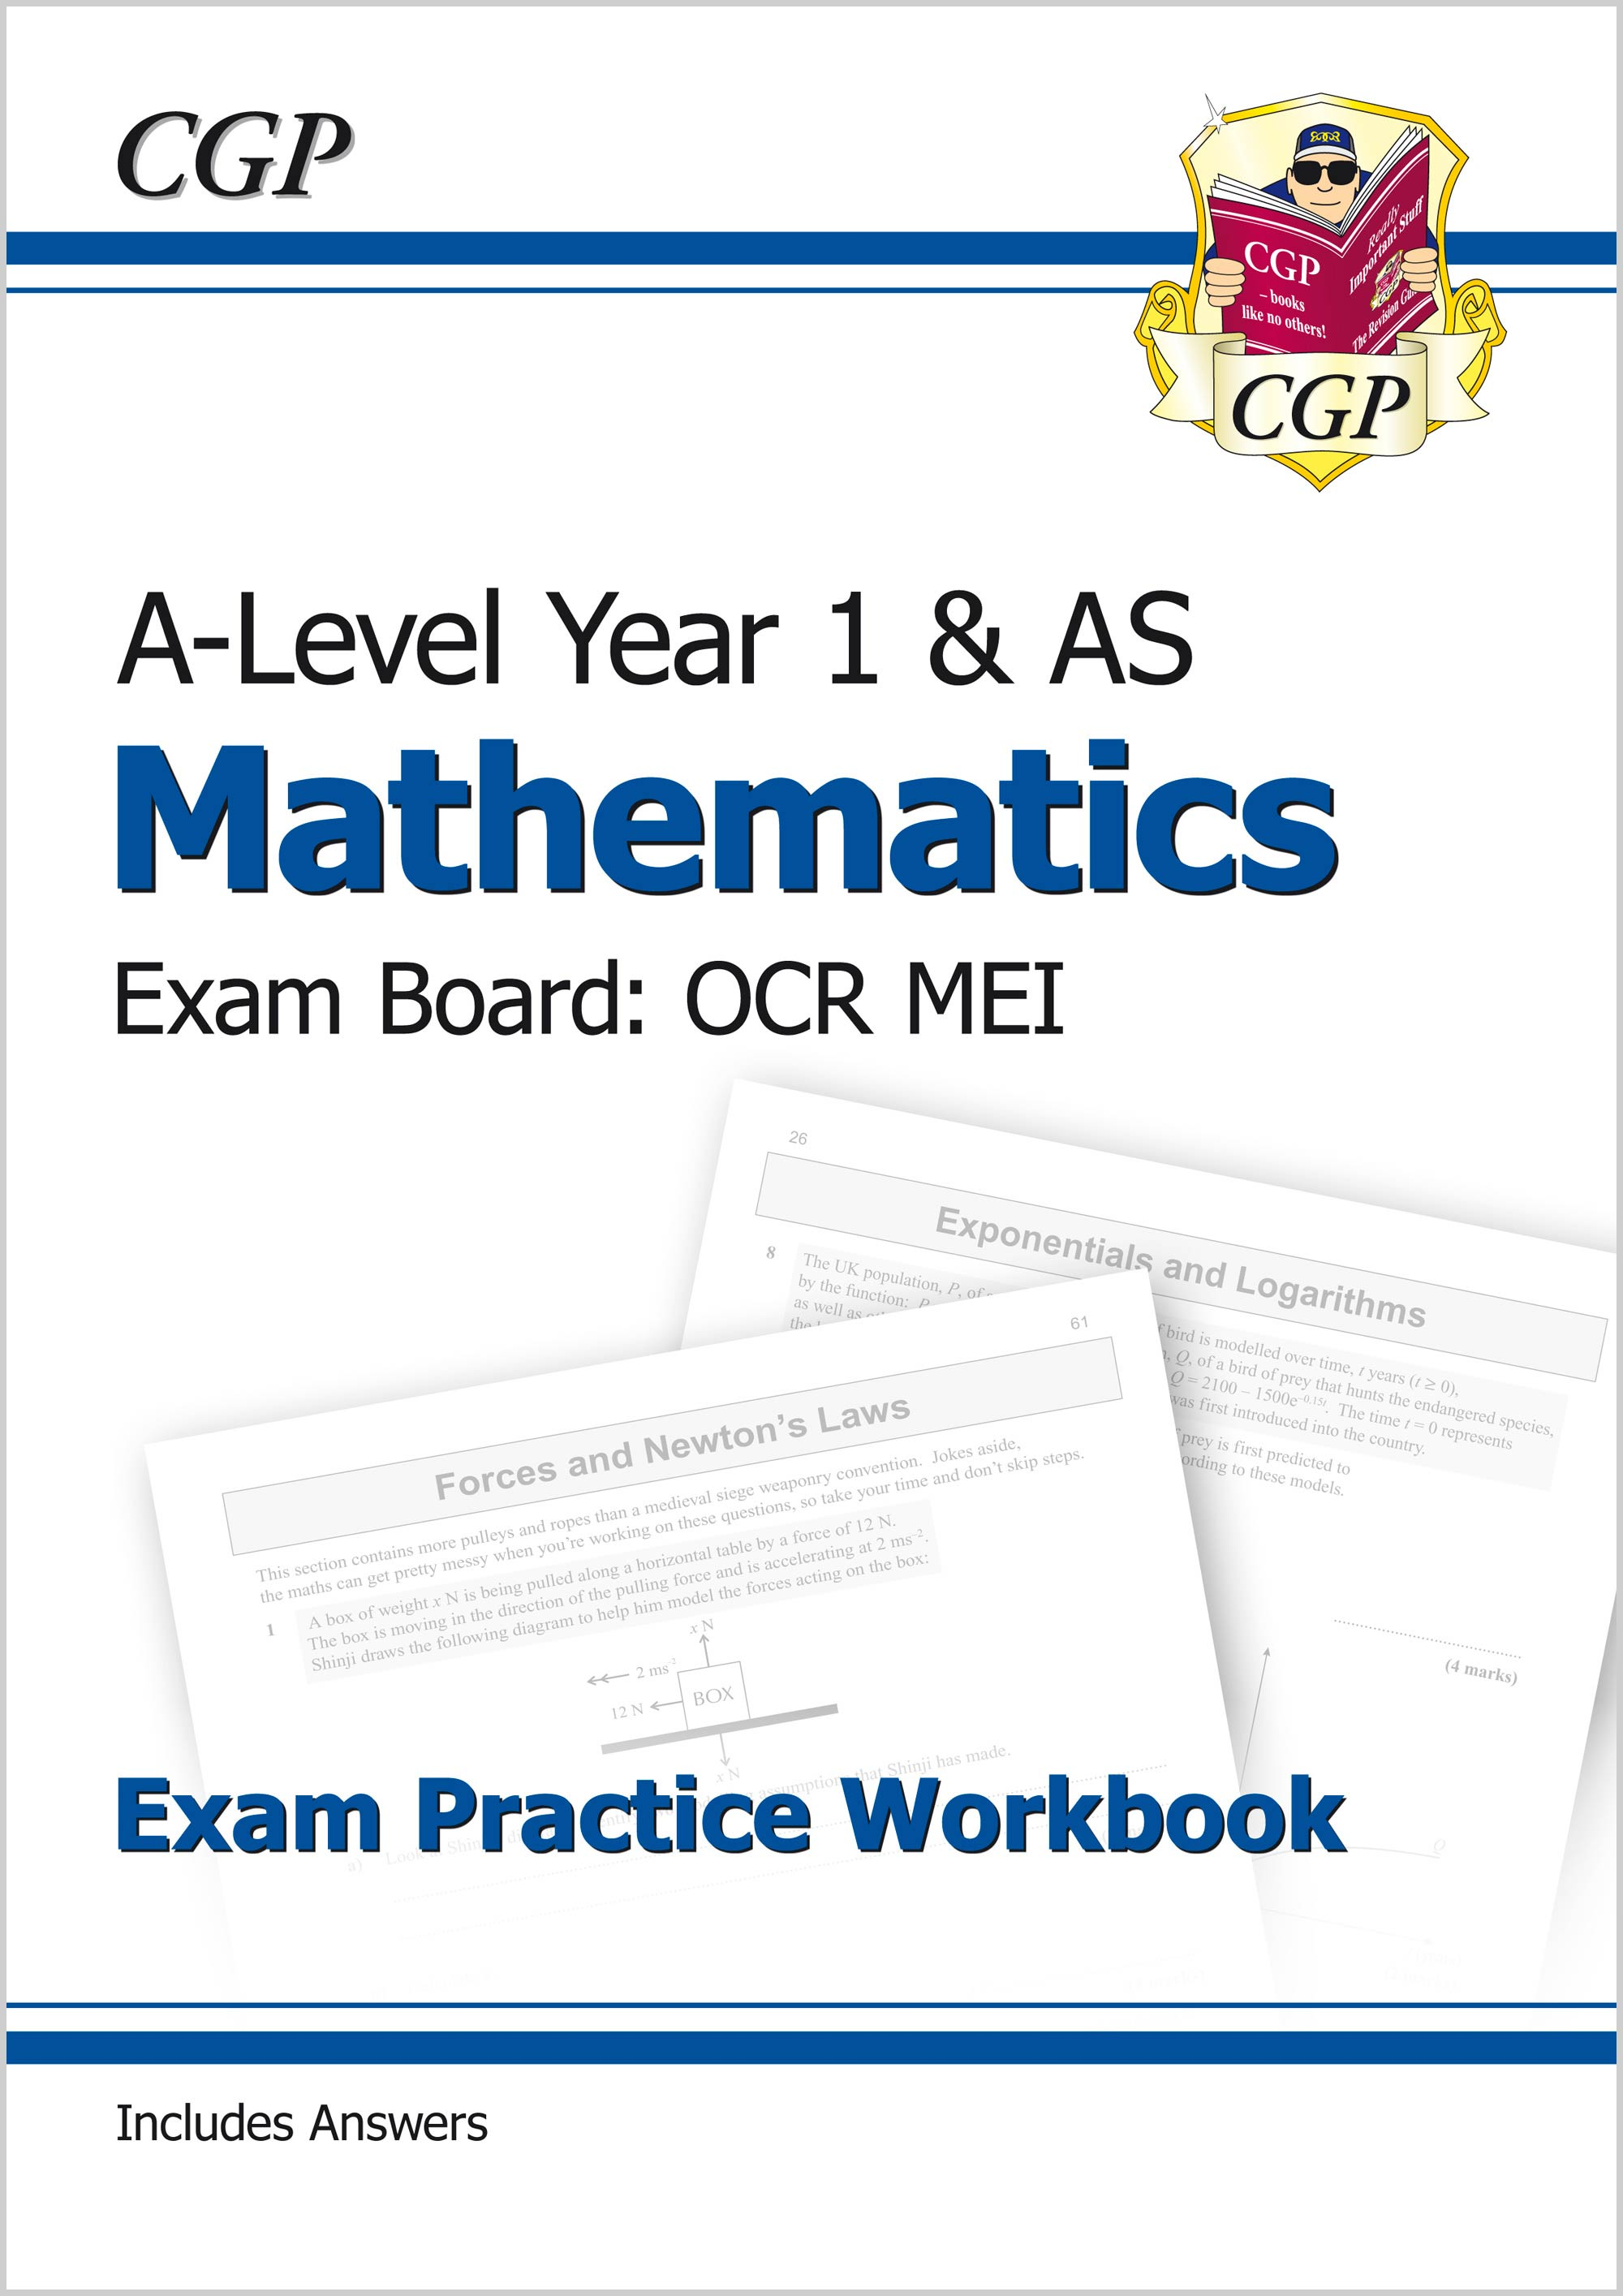 MRMQ51 - A-Level Maths for OCR MEI: Year 1 & AS Exam Practice Workbook